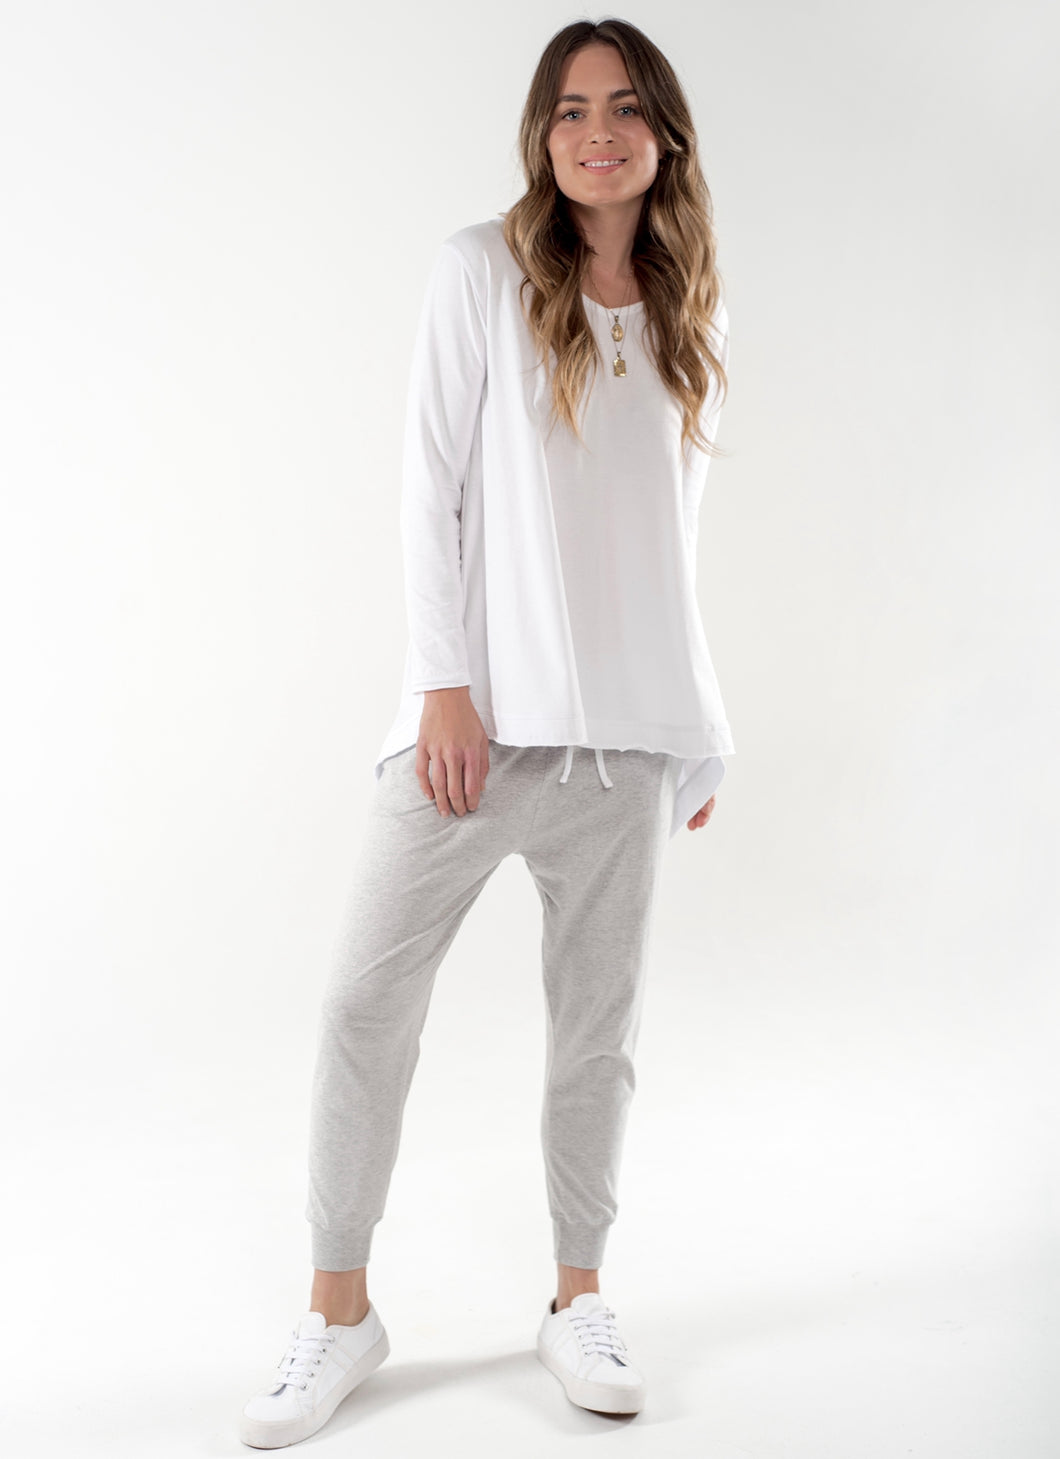 Cle Australian Made Cle Organic Cotton Basics Juliet Long Sleeve Tee - Basic State Australia